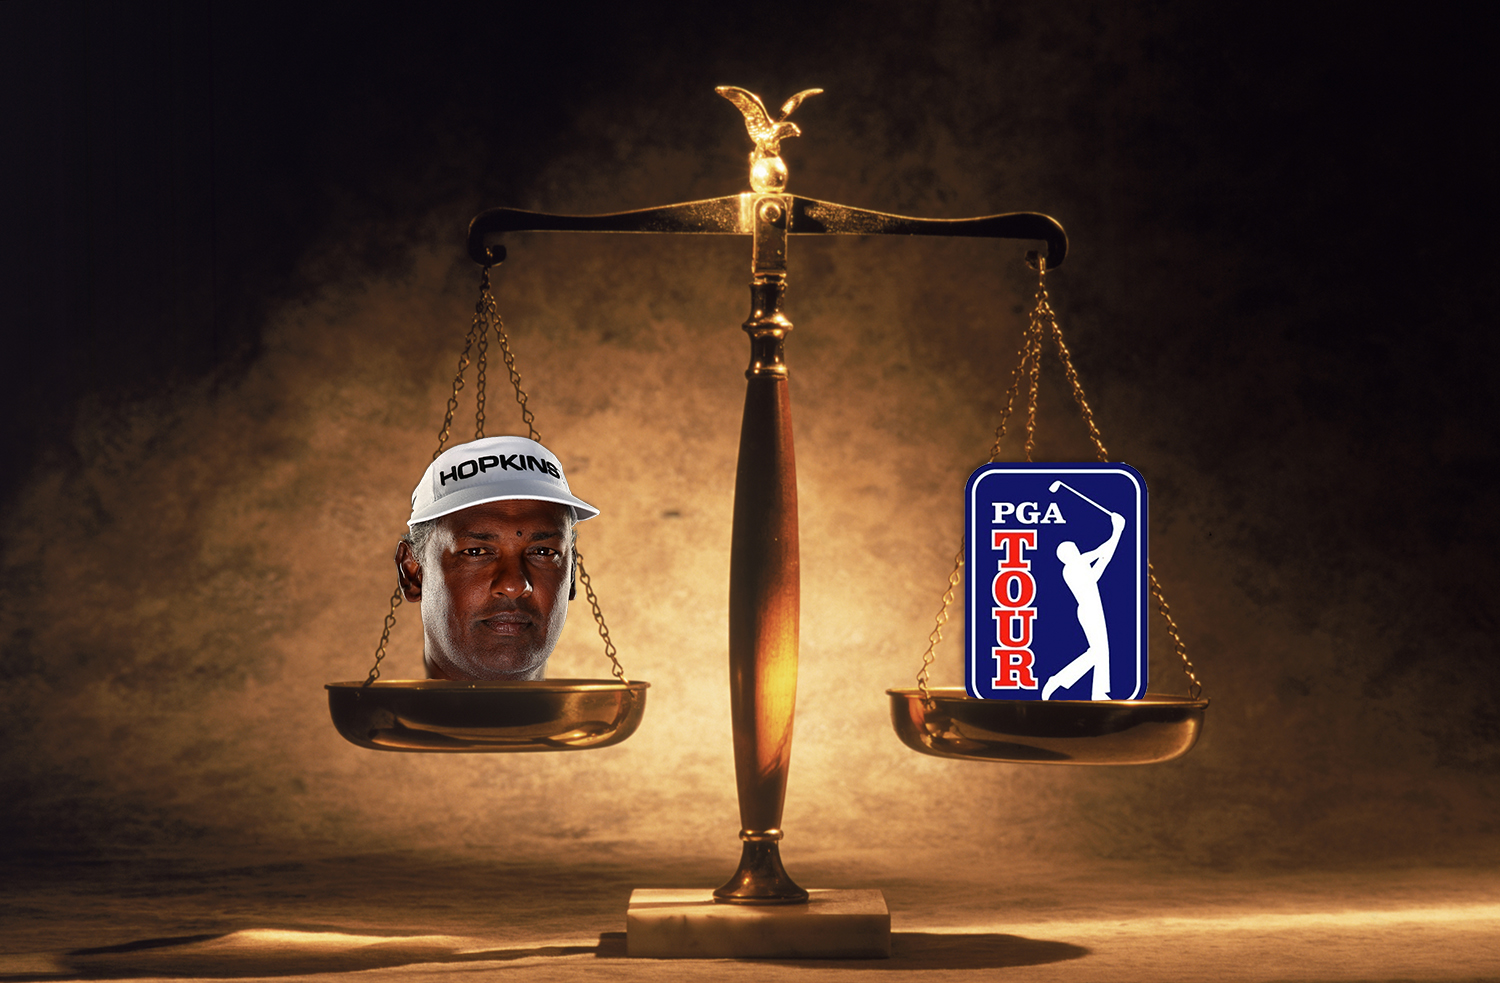 Singh has been battling the PGA Tour in court for more than four years.